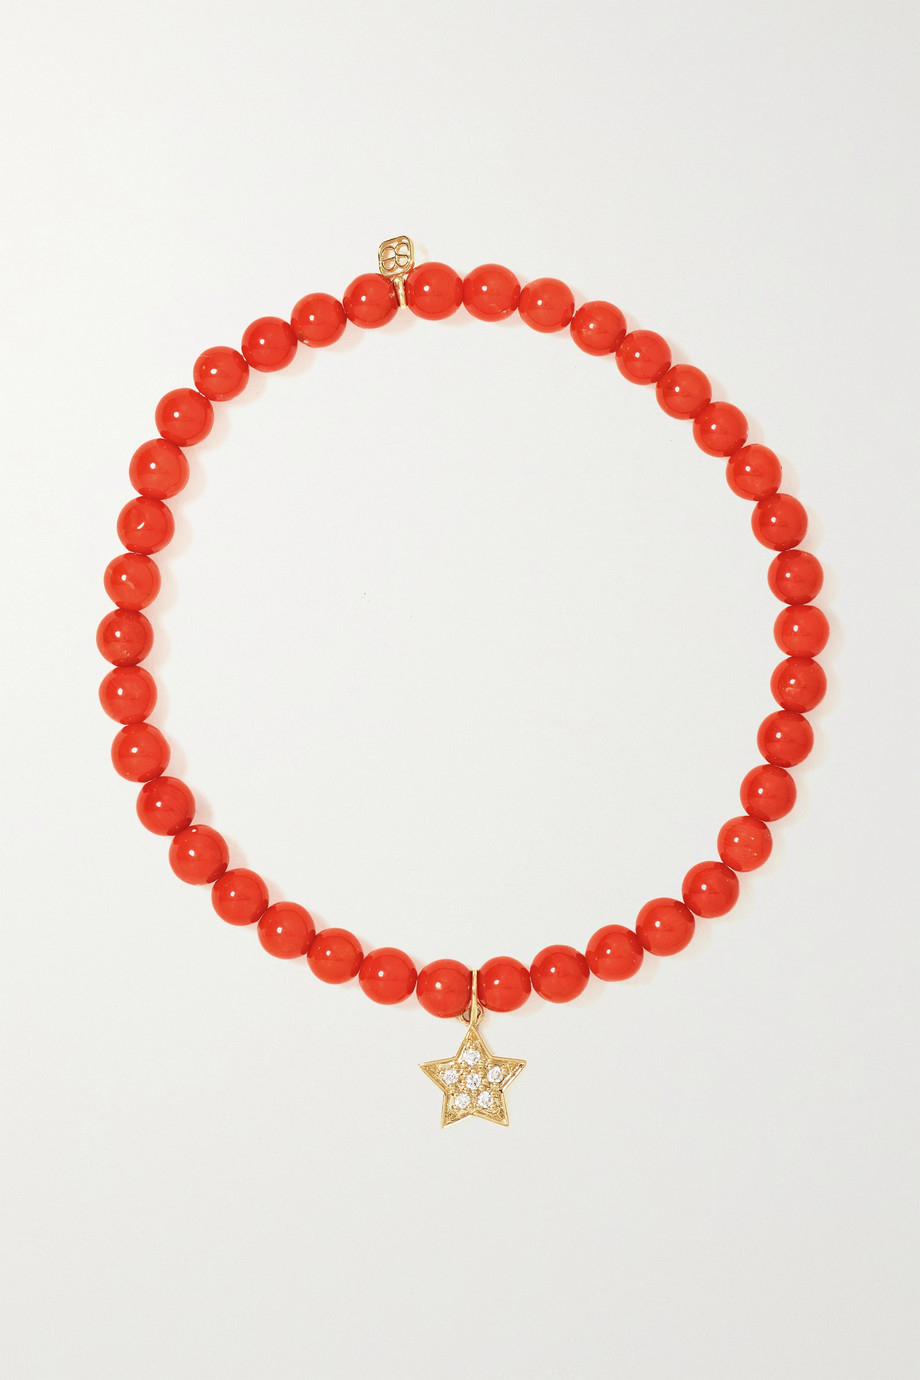 Sydney Evan Bracelet en or 14 carats, corail et diamants Small Star